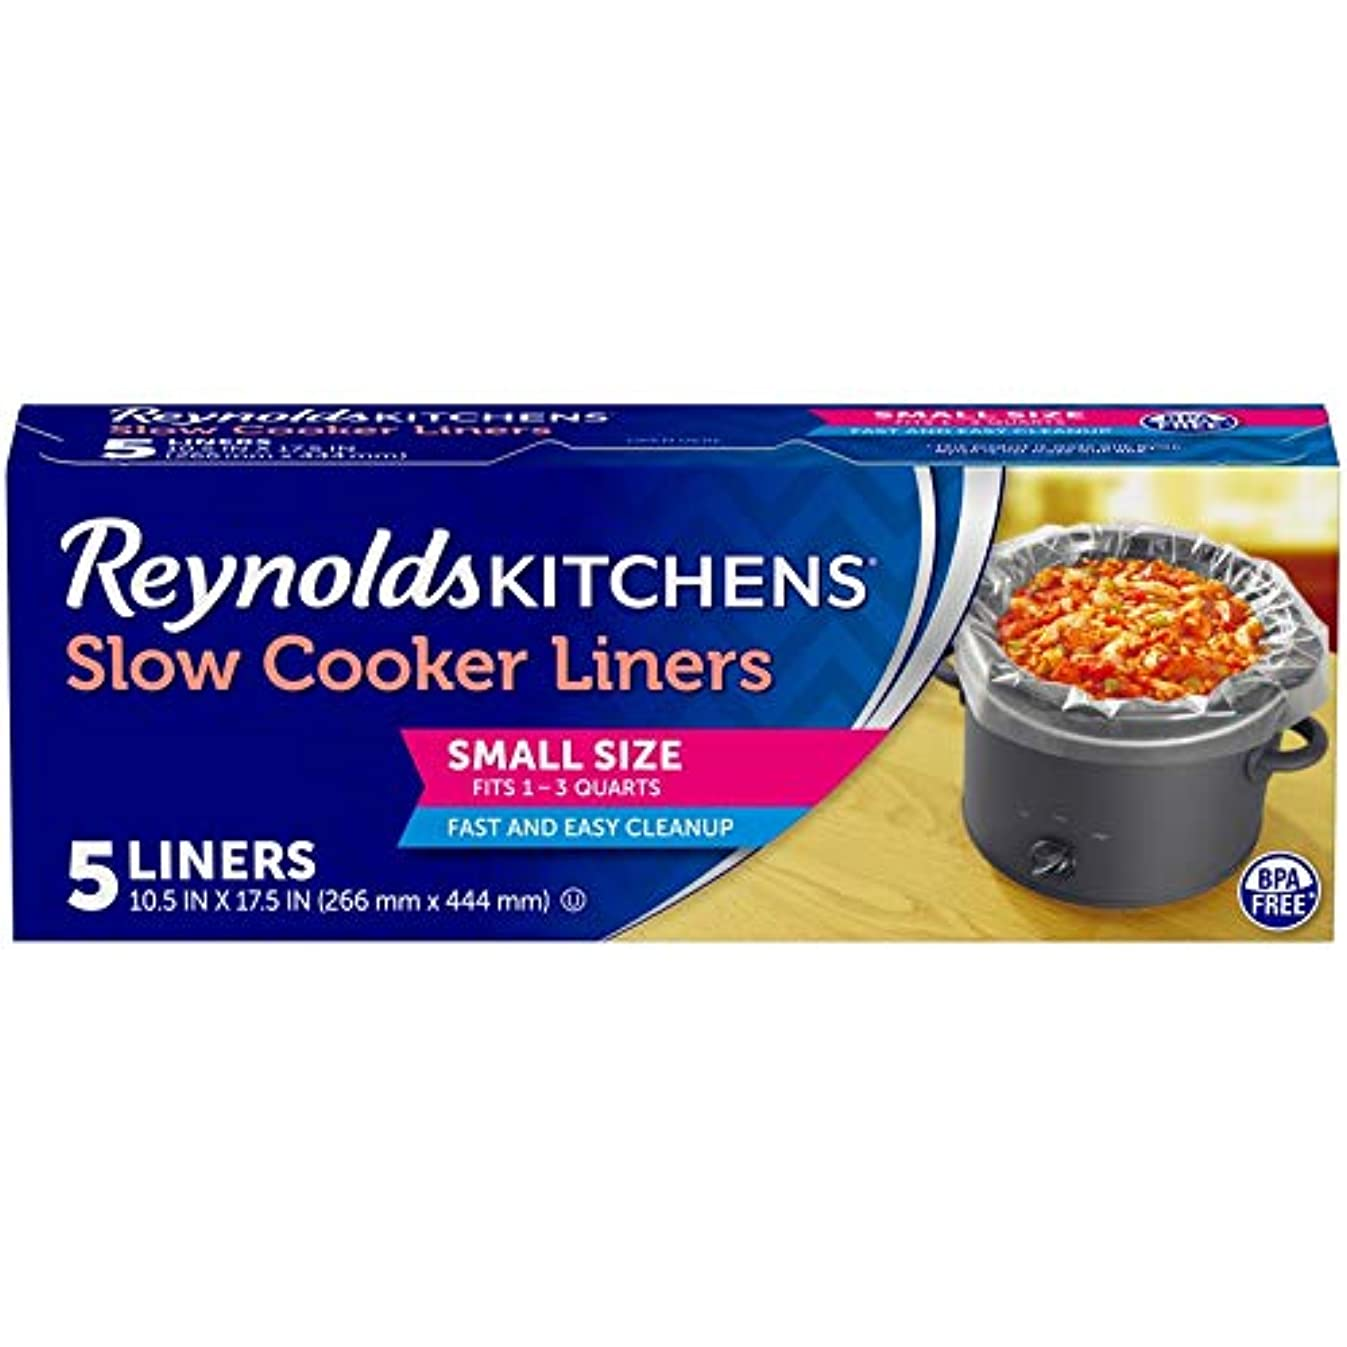 Reynolds Kitchens Small Size Slow Cooker Liners - 10.5x17.5